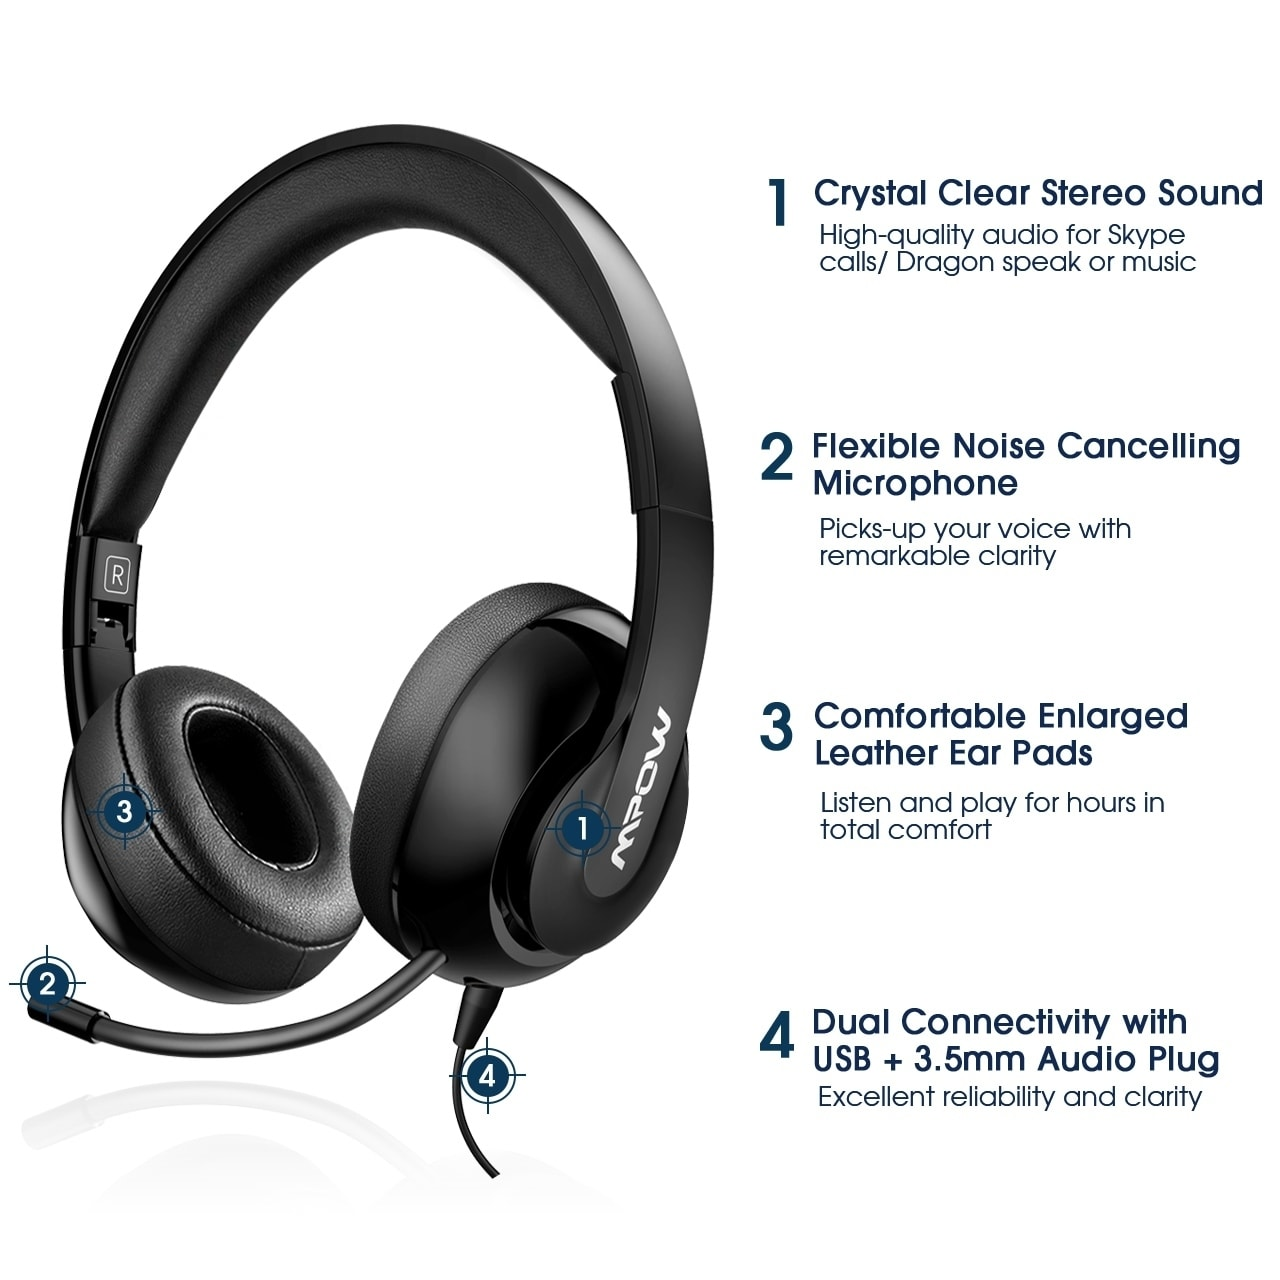 Shop Mpow 224 Usb 3 5mm Computer Headsets Bluetooth Headsets With Noise Cancelling Mic For Pc Tablets Business Headset For Skype Overstock 31194934